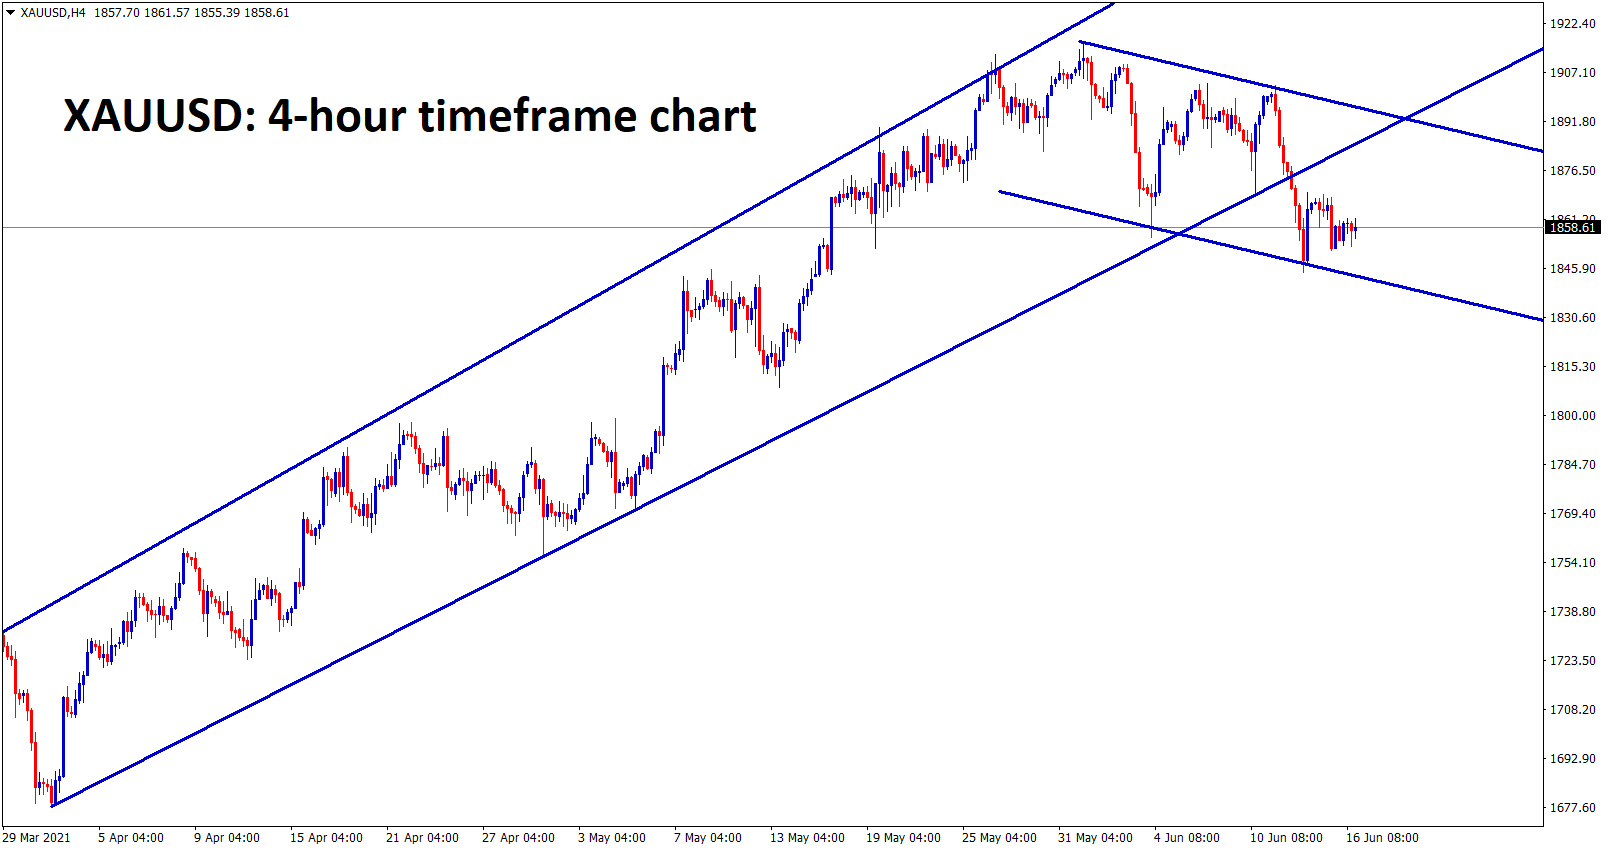 Gold is consolidating after breaking the bottom level of an uptrend line